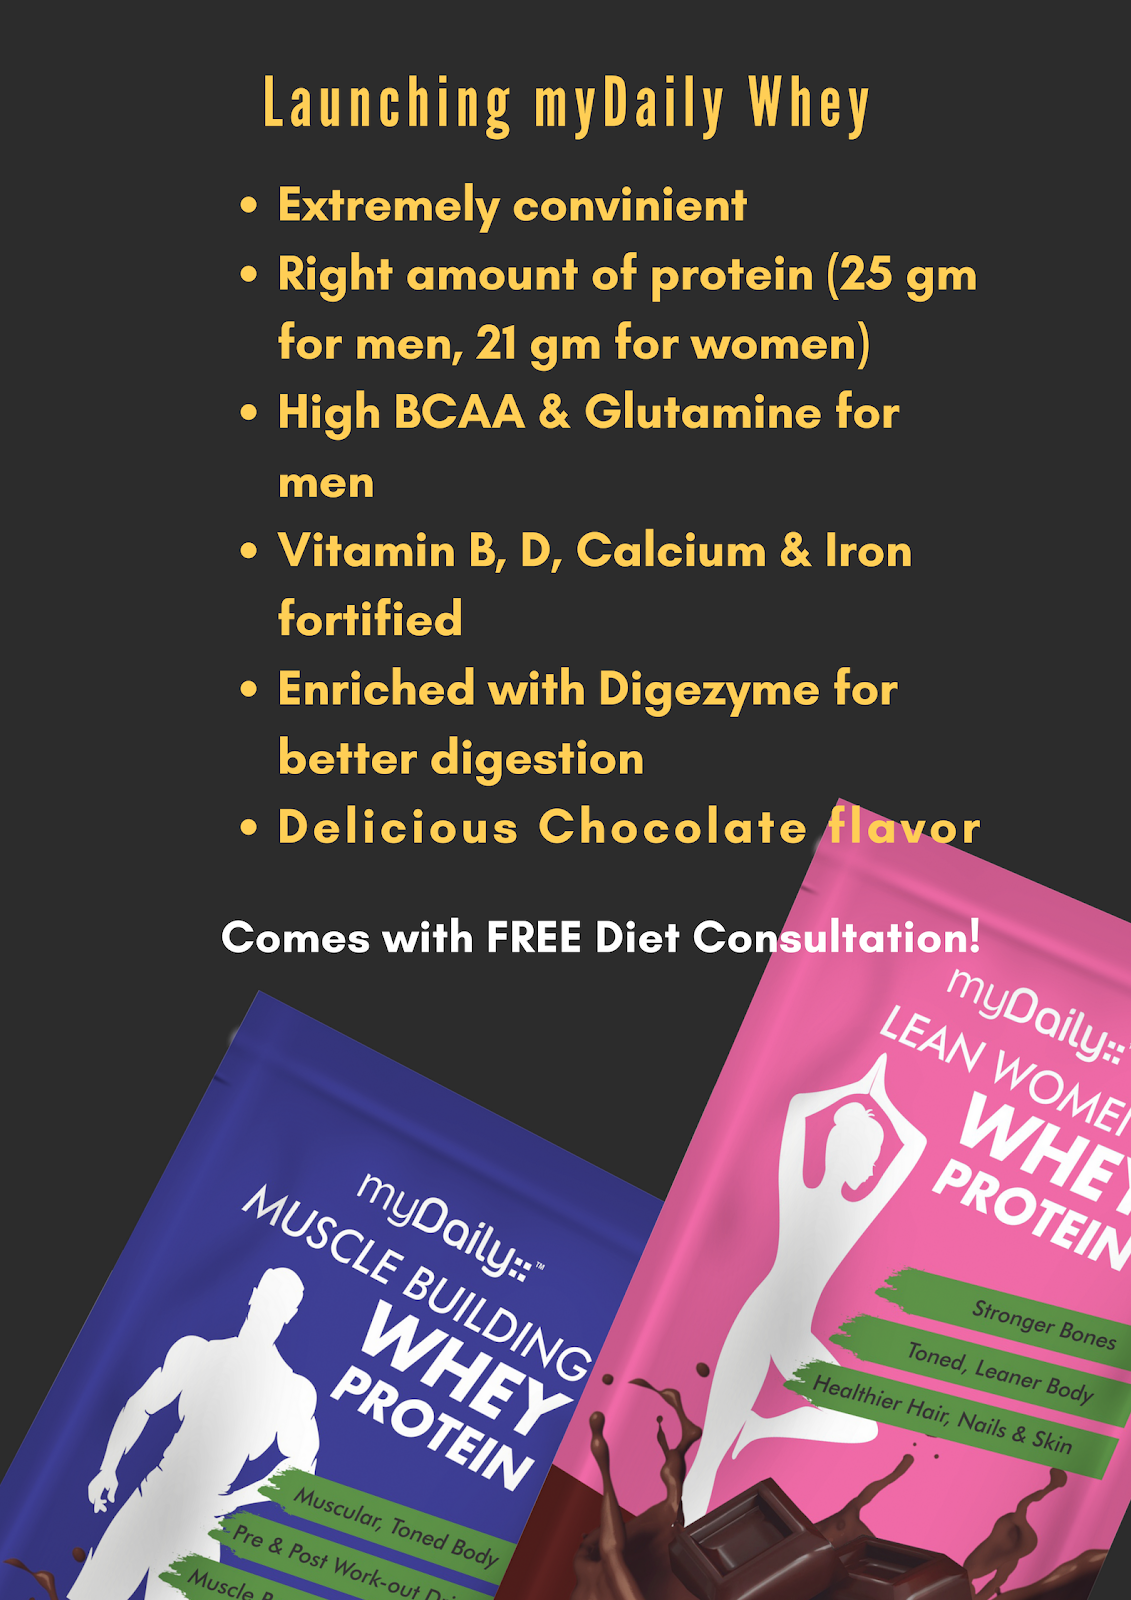 mydaily launched whey protein